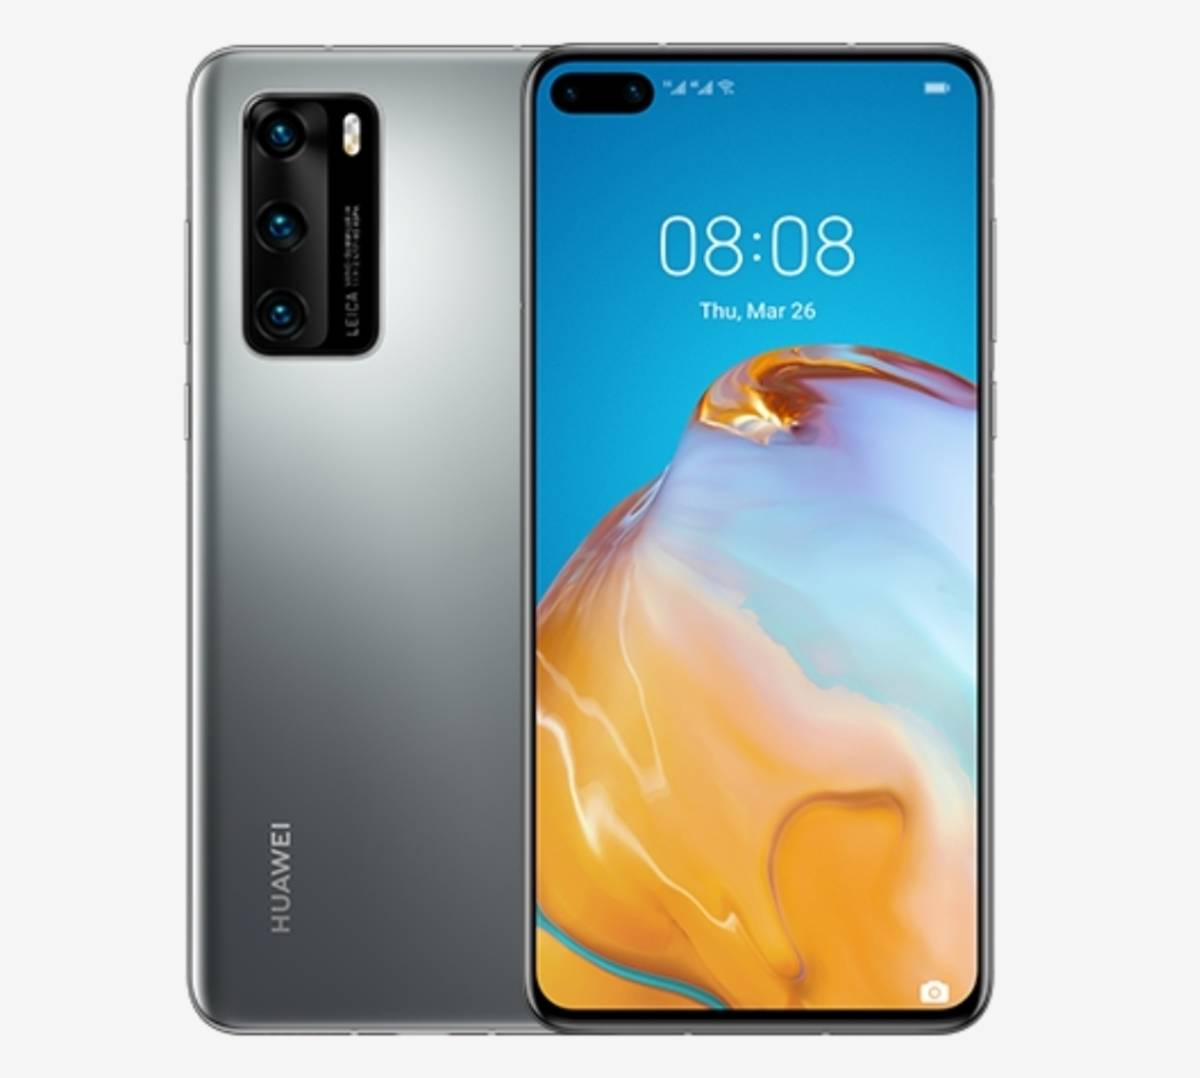 huawei p40 image, specs and price in Nigeria, huawei p40 price in Nigeria